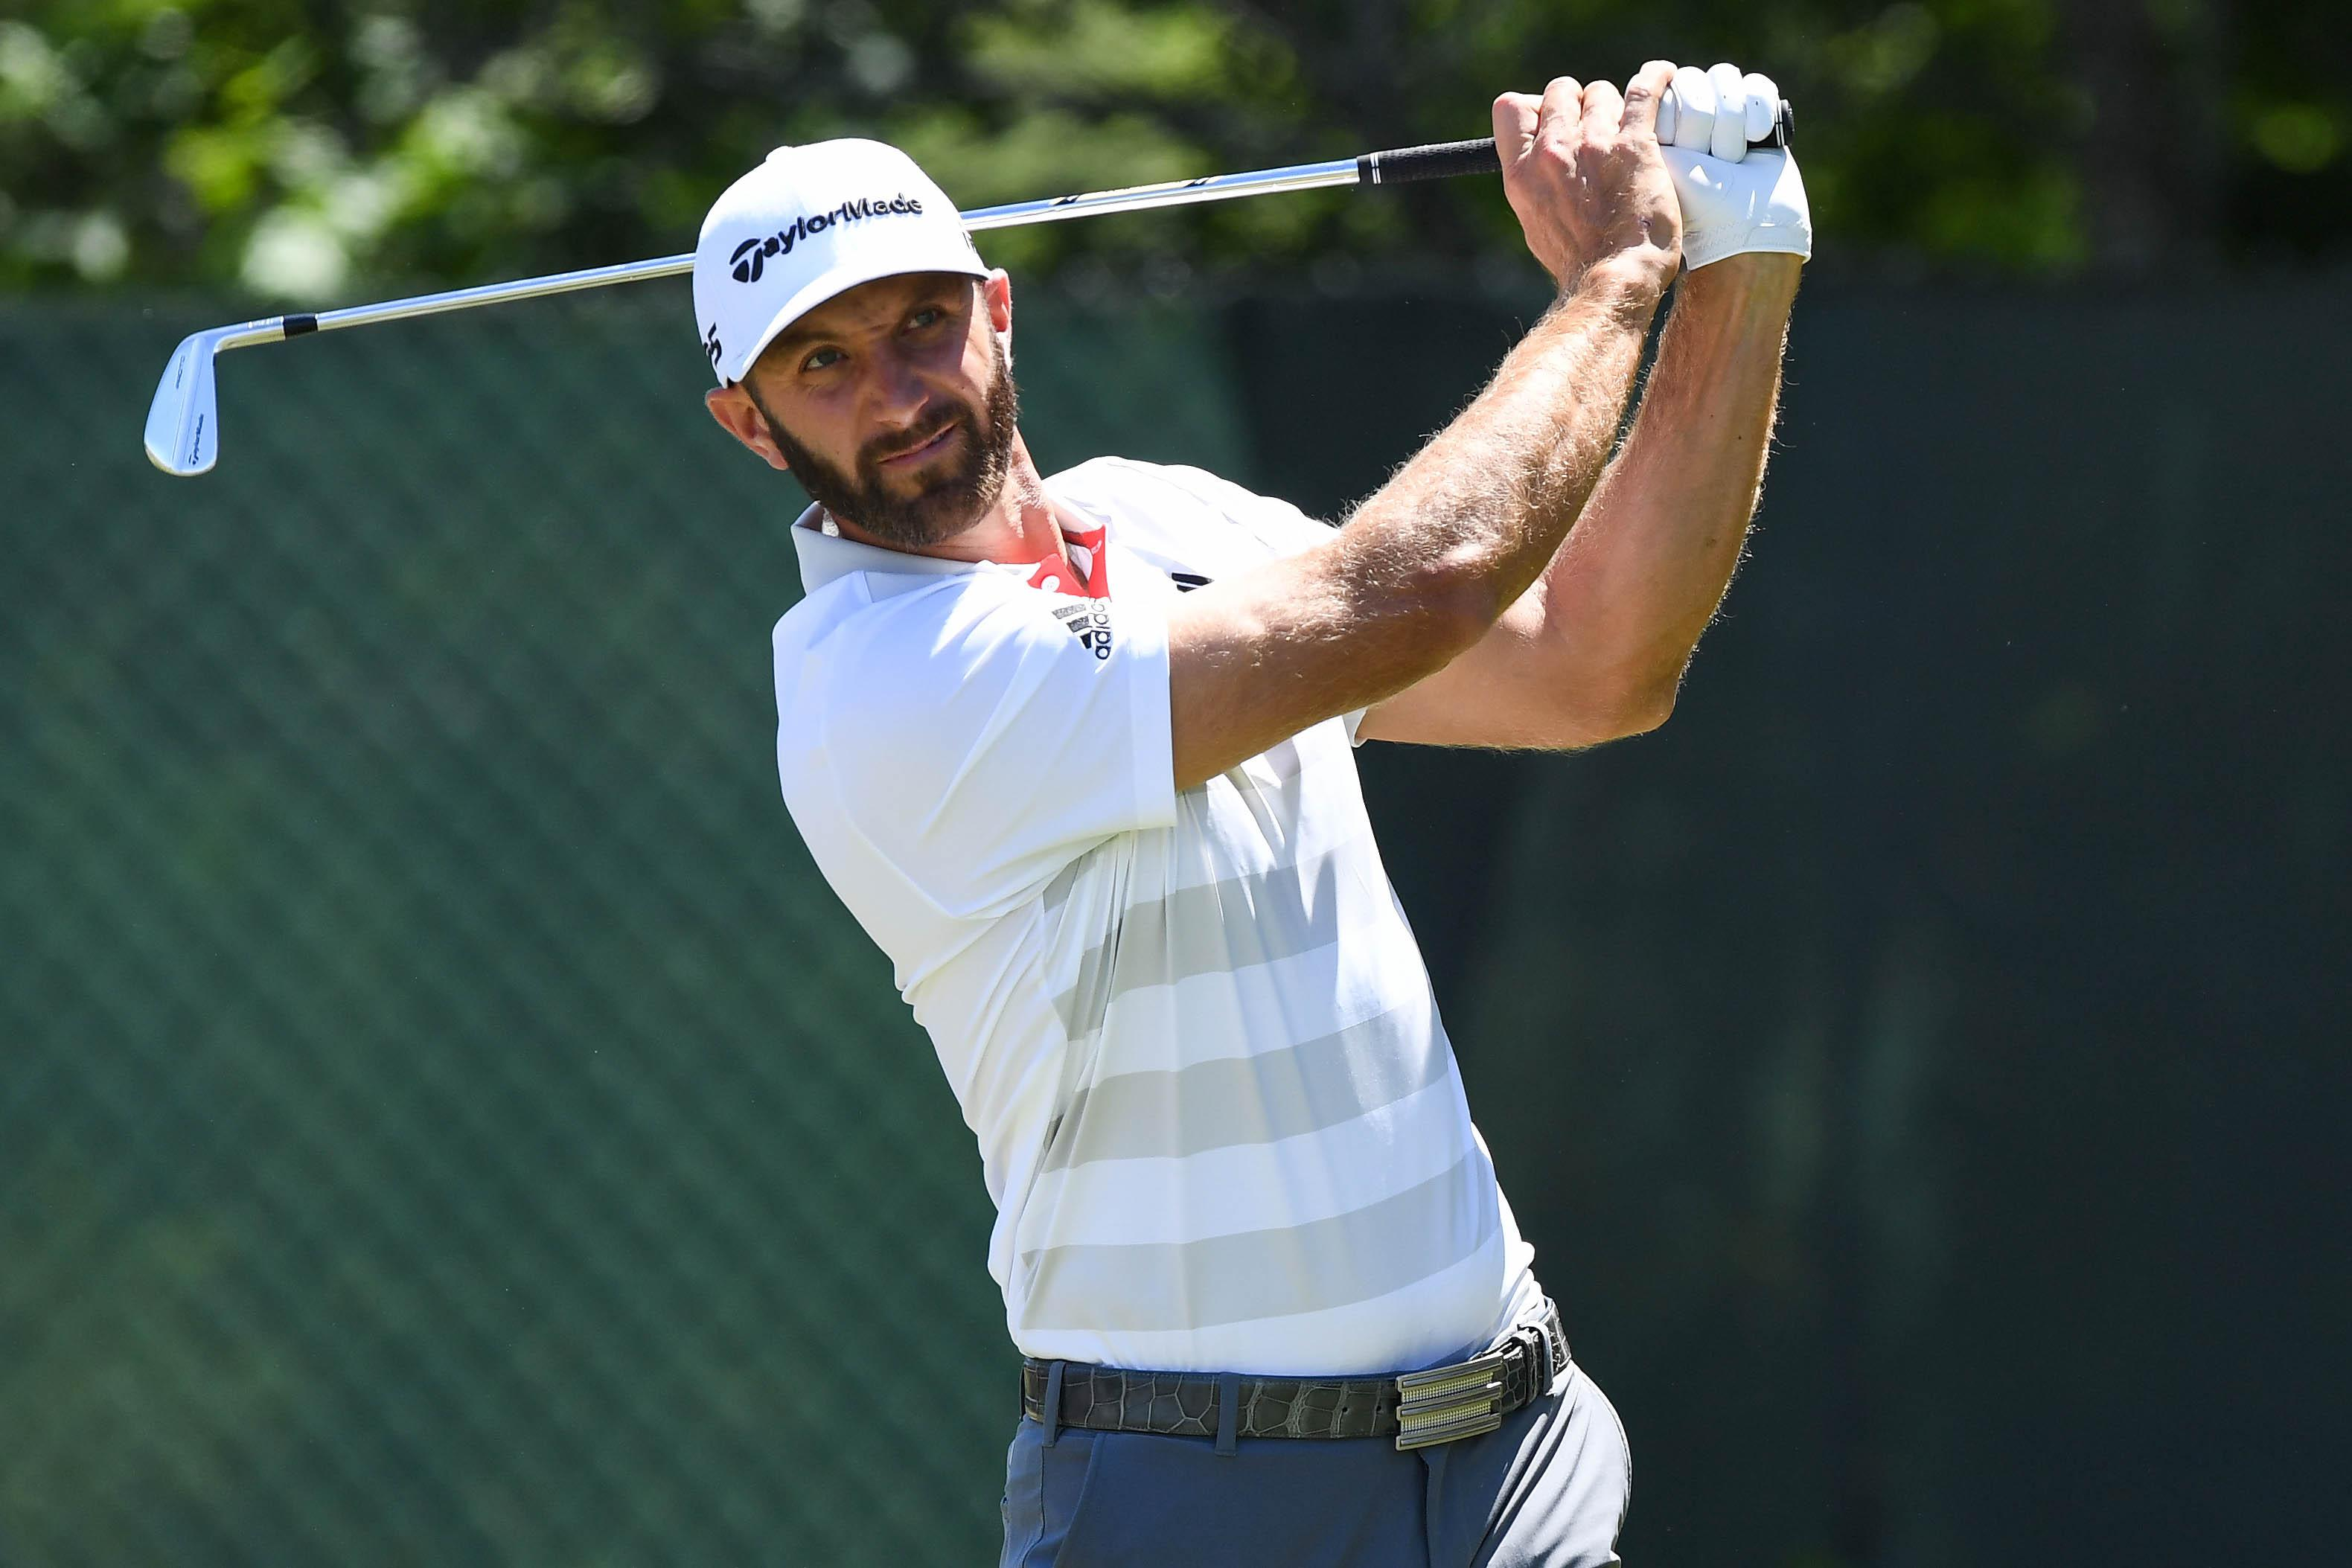 US ace Dustin Johnson got off to a solid start